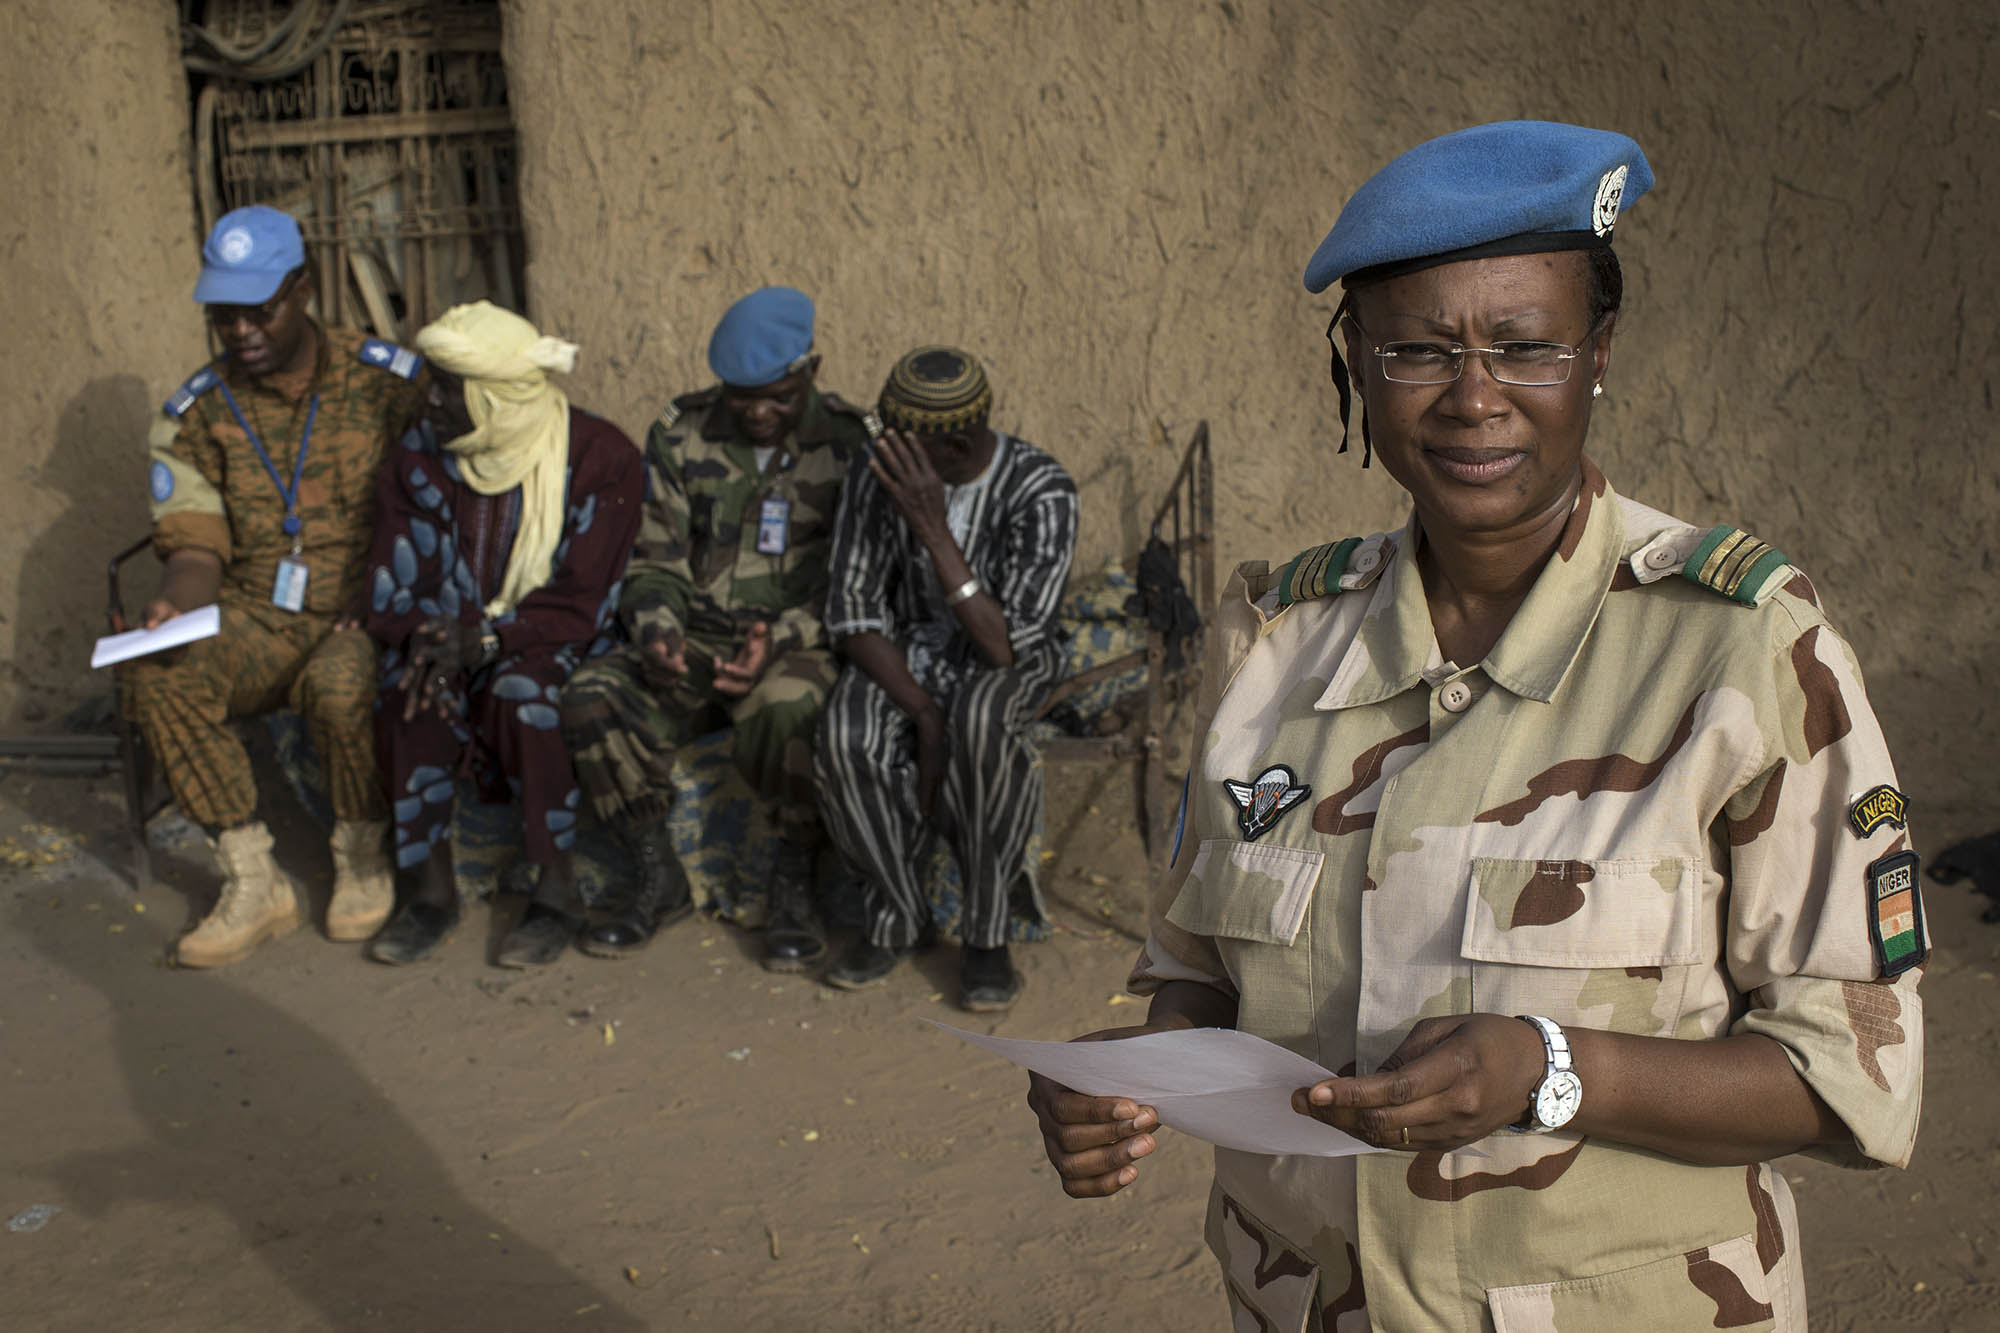 UN Peacekeeping: Year in Review